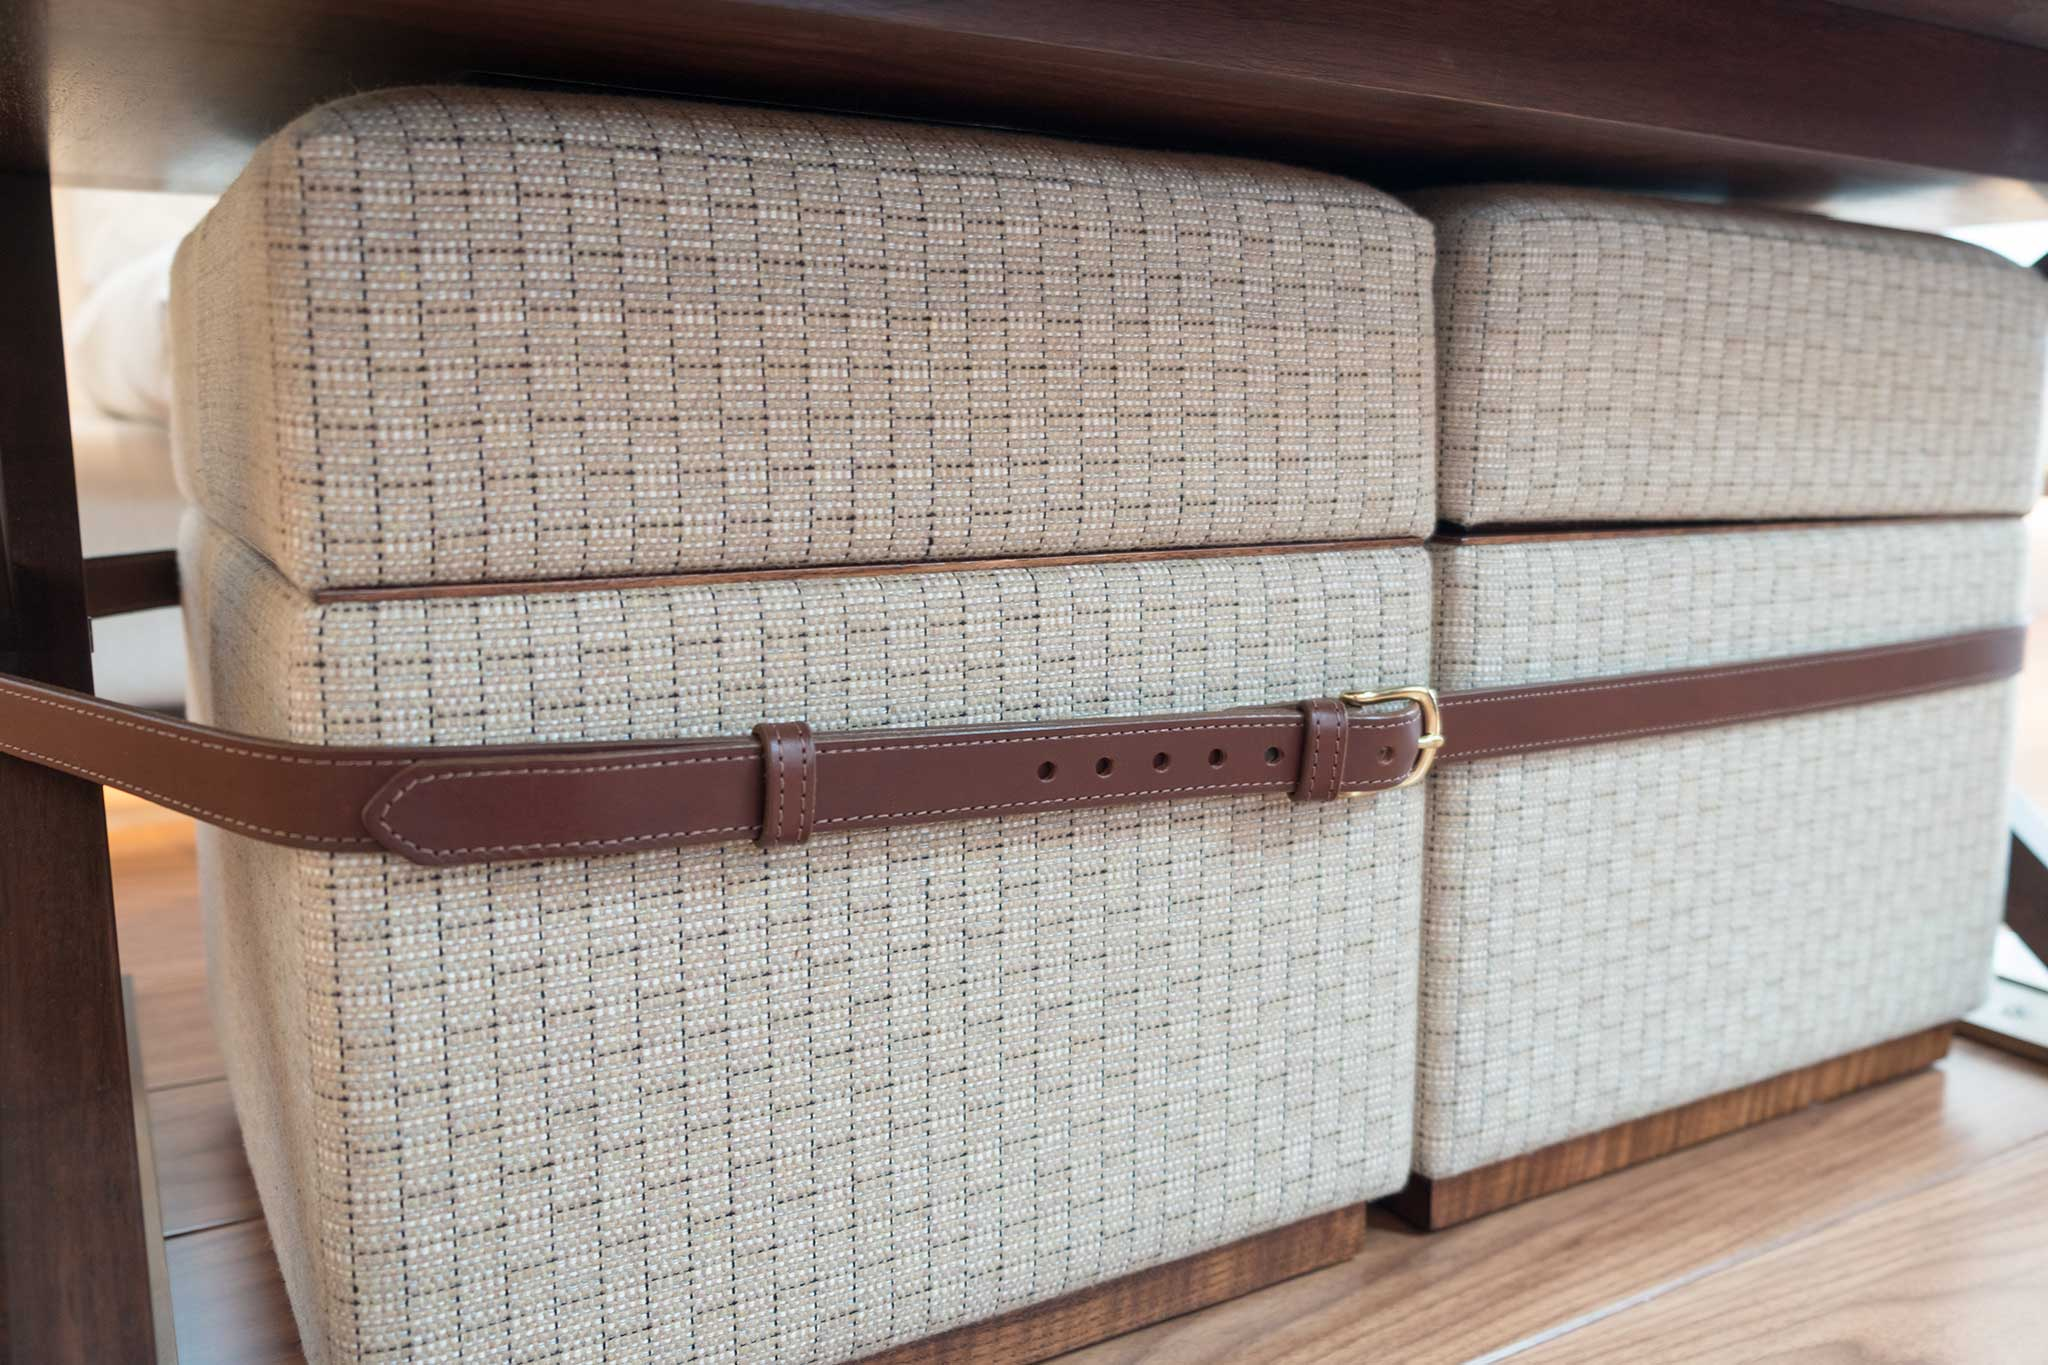 Ottoman Storage Boxes With Leather Straps By Passmore